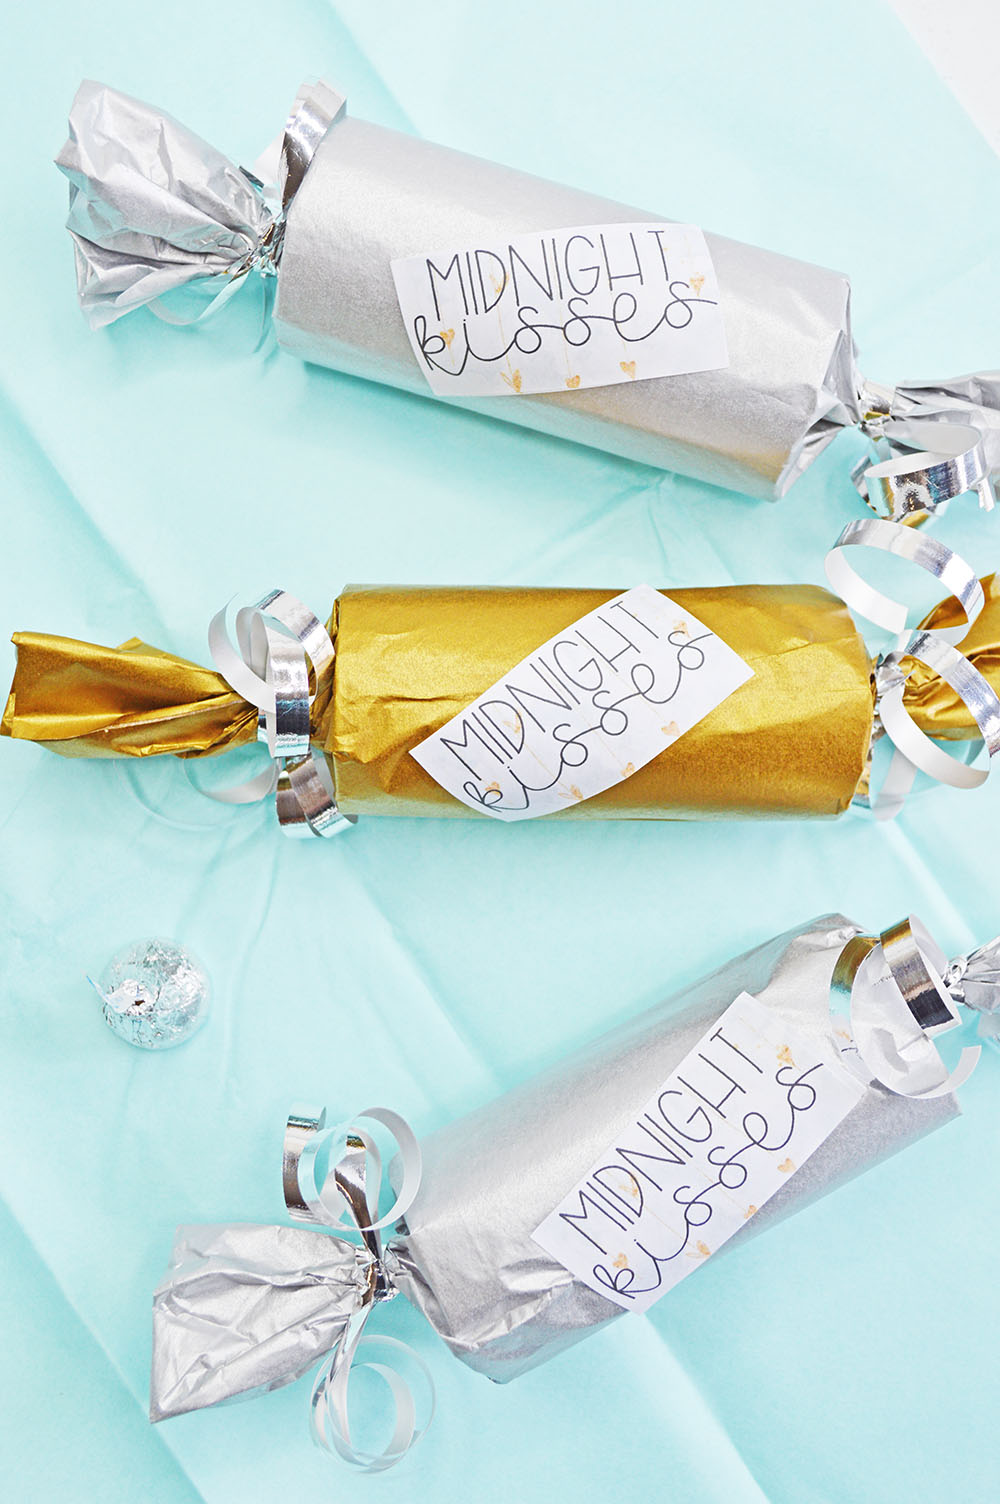 Midnight Kisses DIY New Years Eve Party Favor - Planning ...